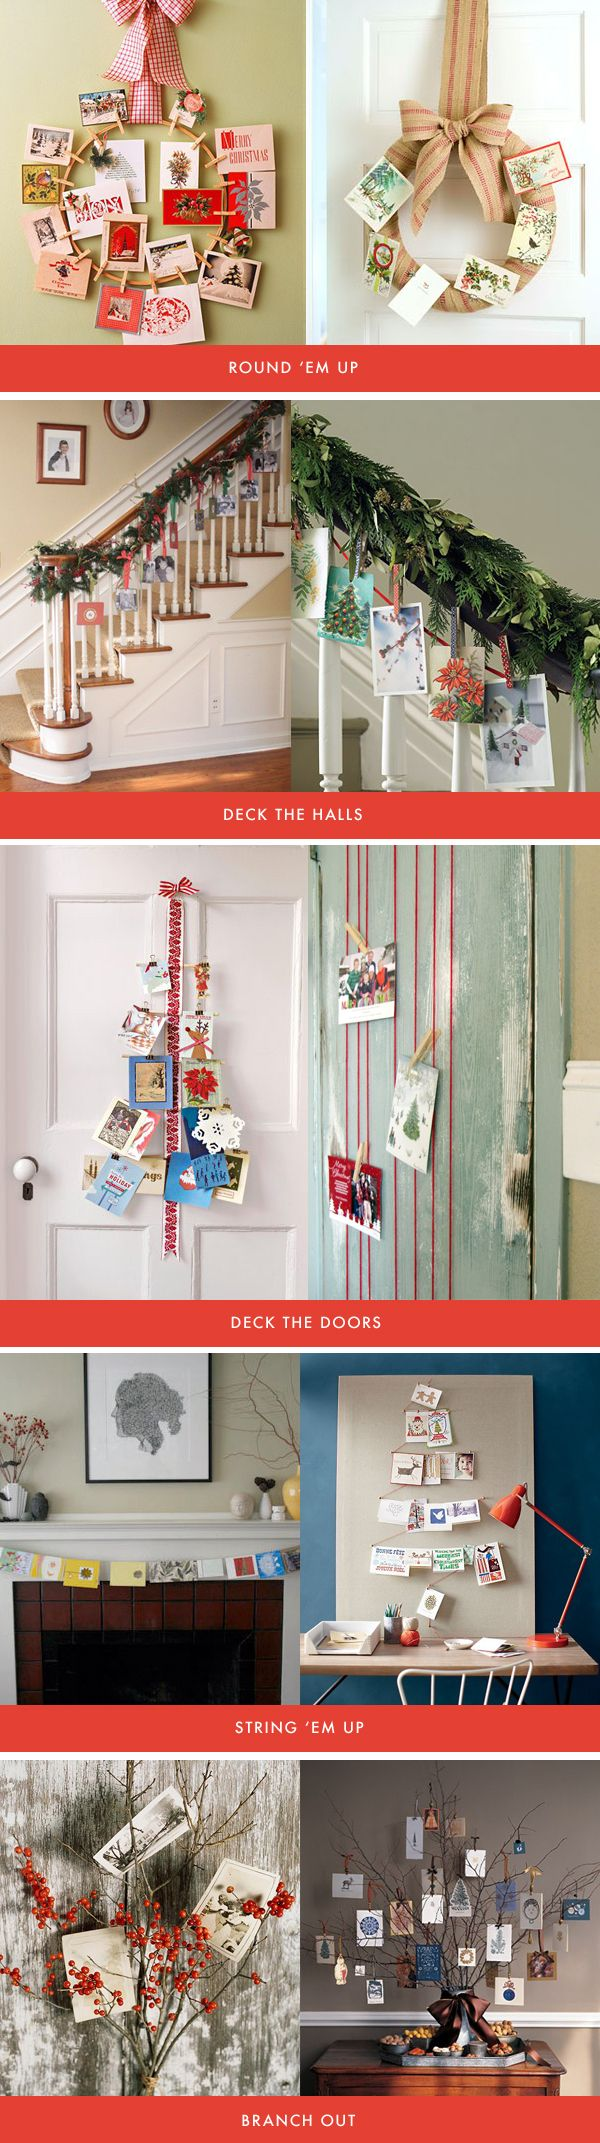 Charmant Creative Ways To Display Christmas Cards   31 Days To Take The Stress Out  Of Christmas | ☆ Hometalk Christmas☆ | Pinterest | Christmas Cards, Display  And ...